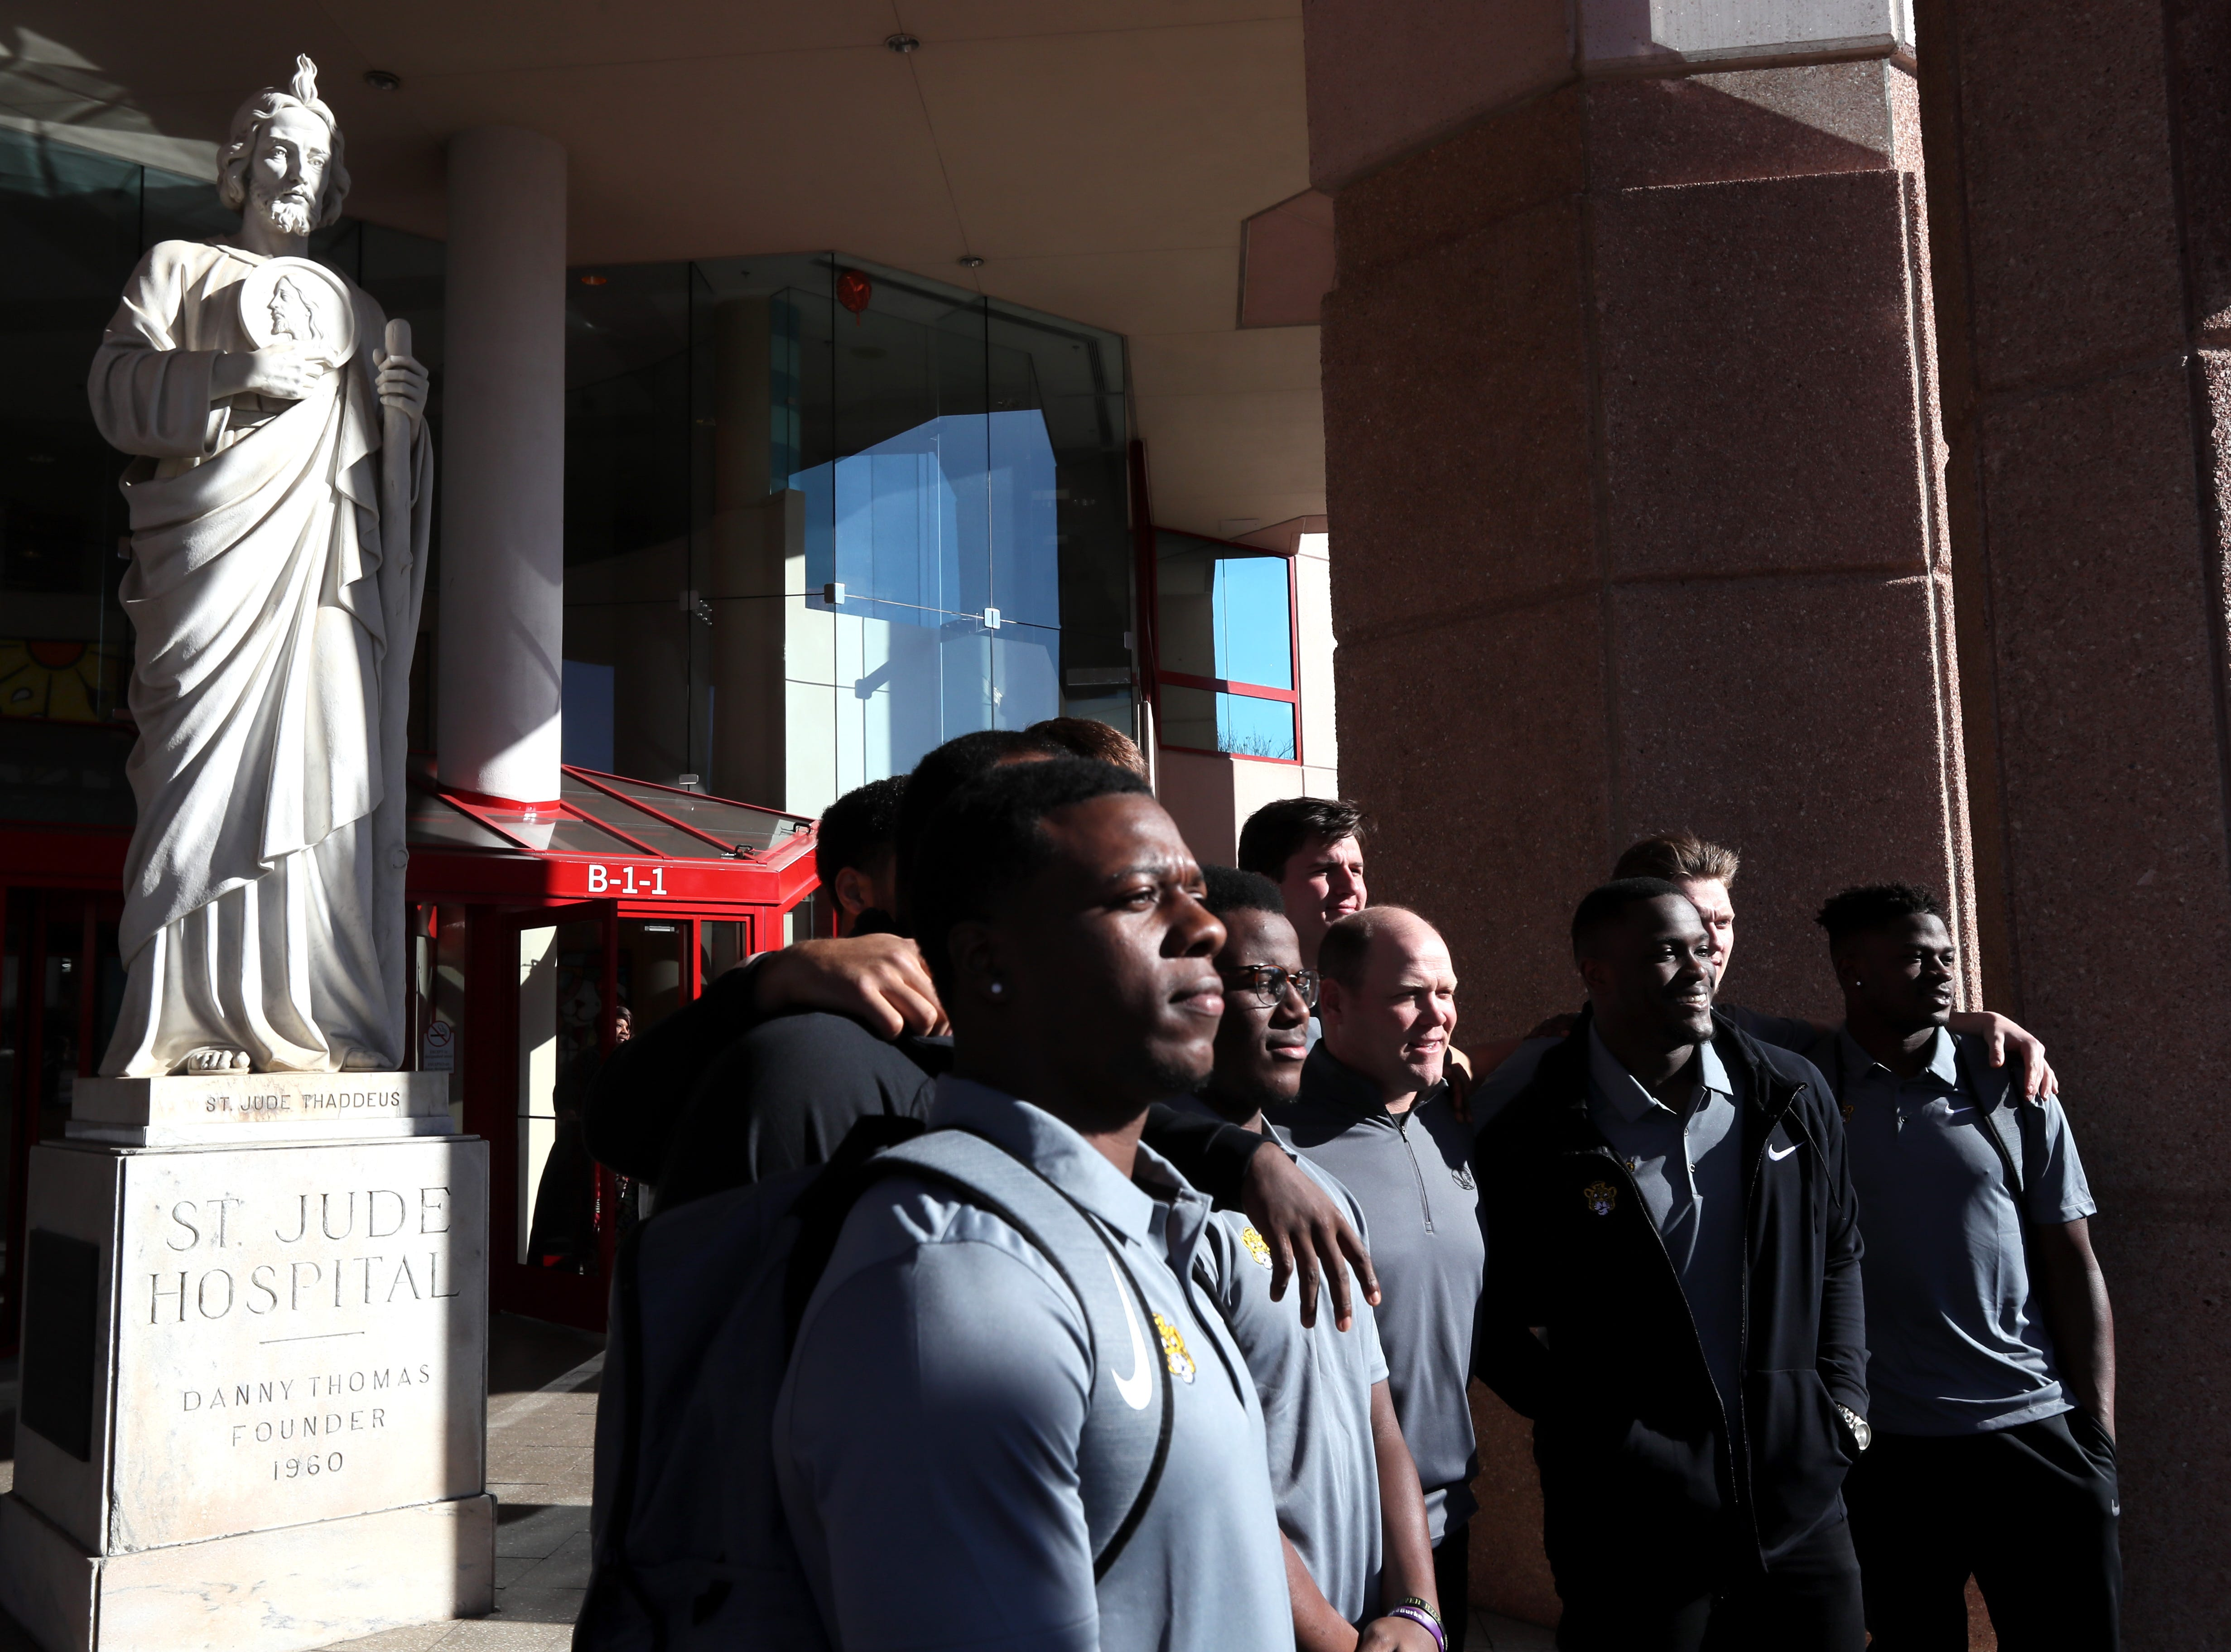 The Missouri Tigers football team poses for a photo outside of St. Jude Children's Research Hospital Friday as the players visited in part of their tour of Memphis, before playing in Monday's Liberty Bowl.